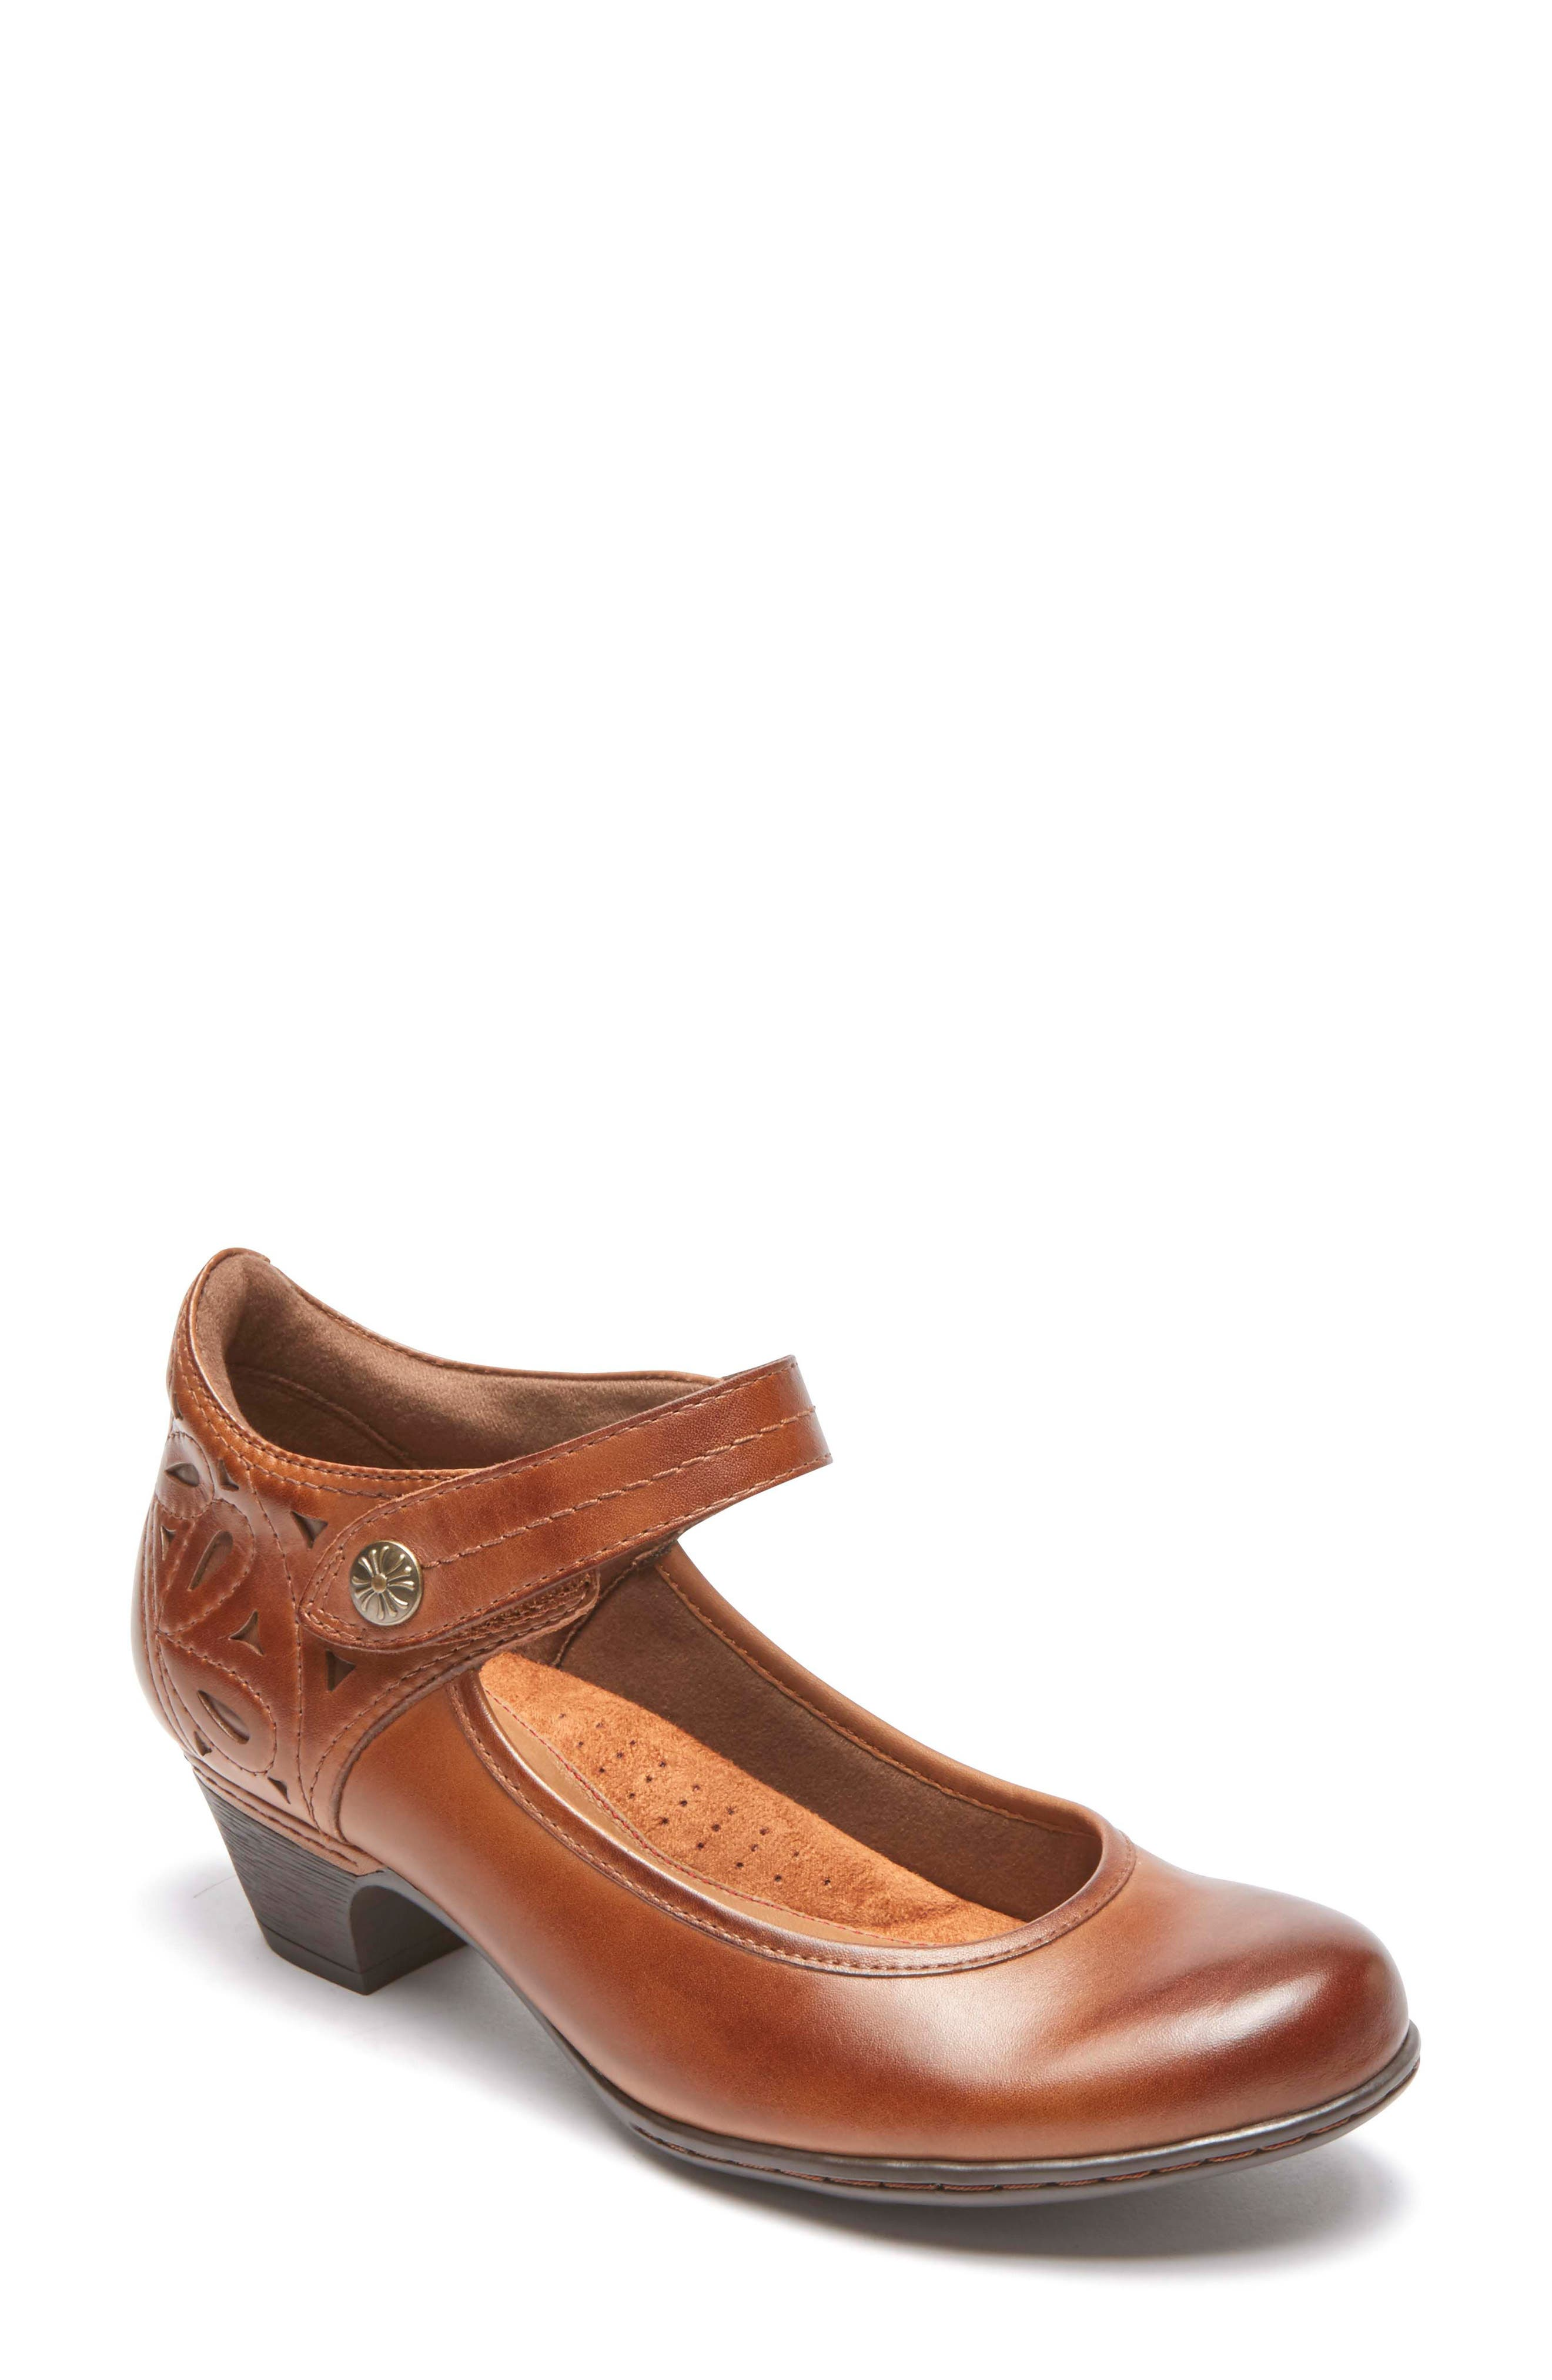 Abbott Mary Jane Pump,                             Main thumbnail 1, color,                             ALMOND LEATHER